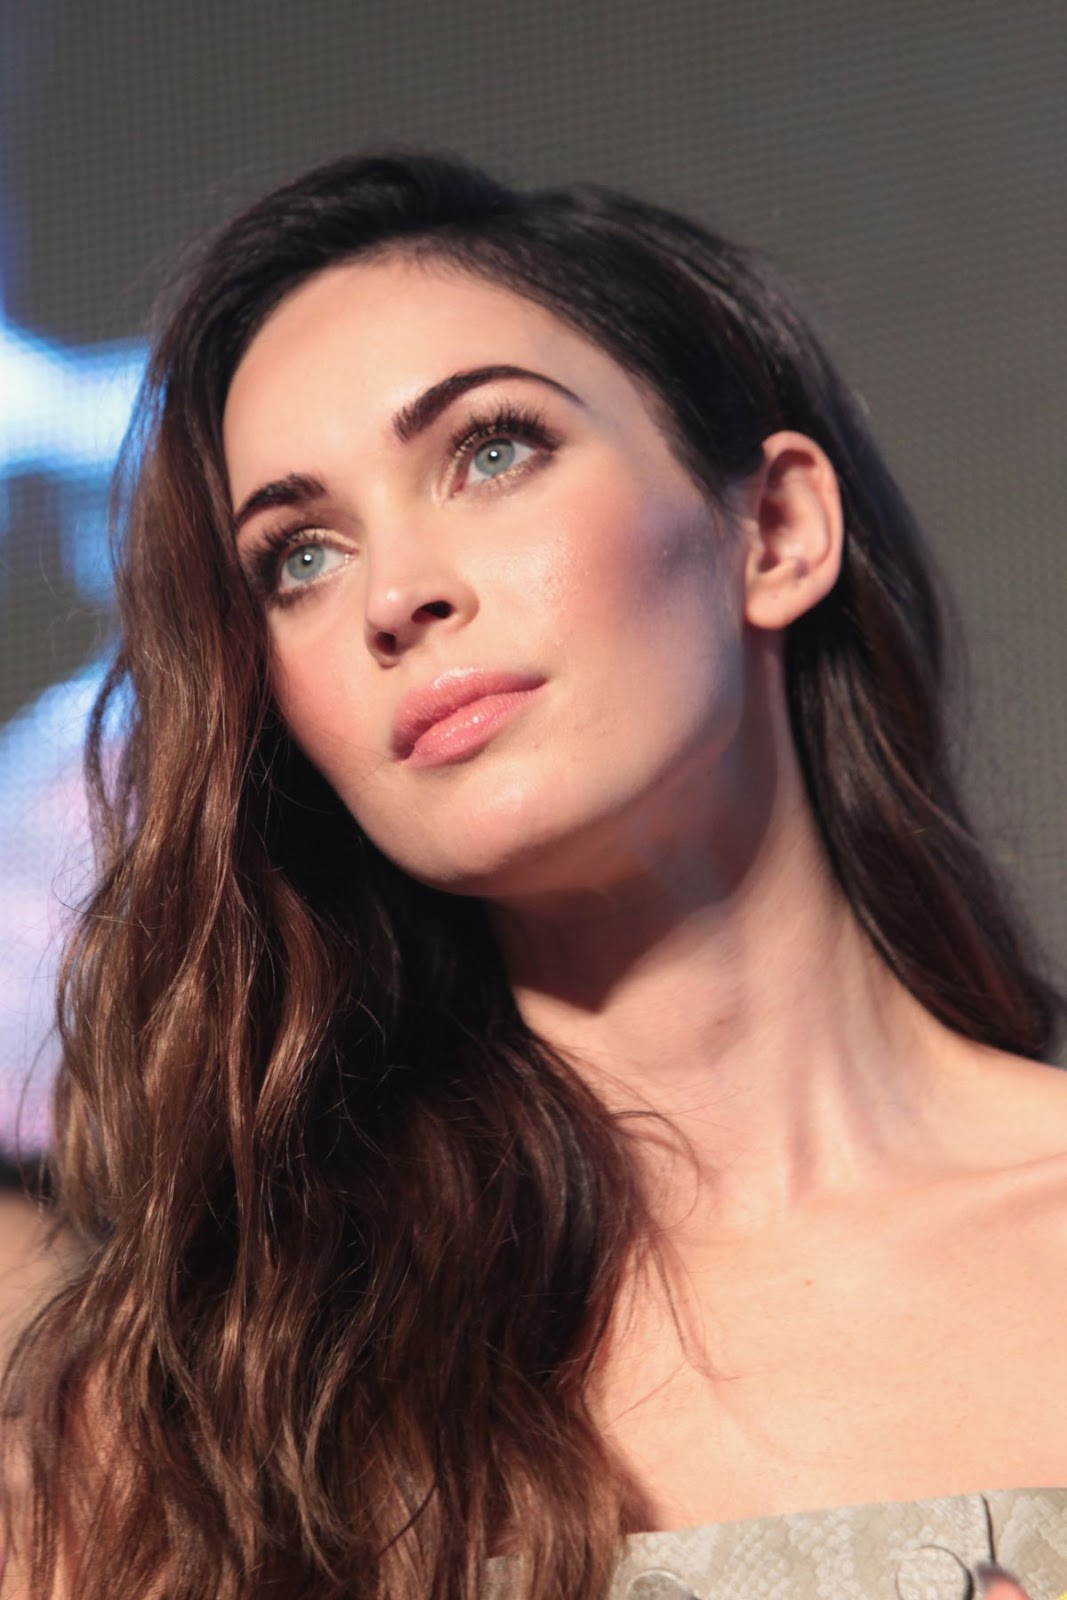 HQ Photos of Megan Fox at Teenage Mutant Ninja Turtles Seoul Premiere